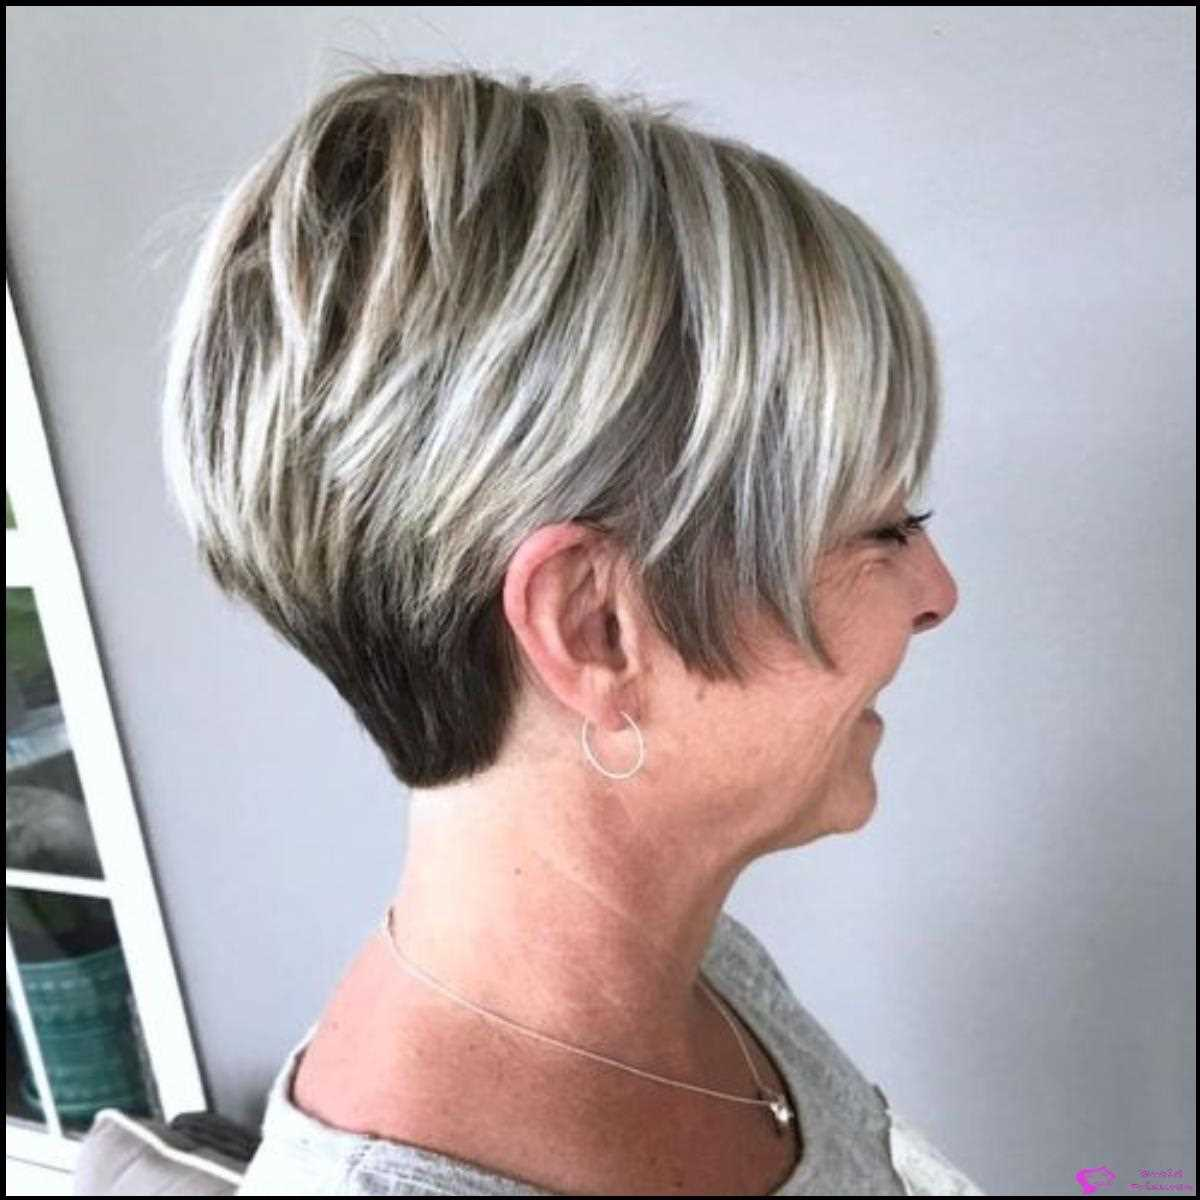 17: Piece-y TapeRot Blonde Balayage Pixie